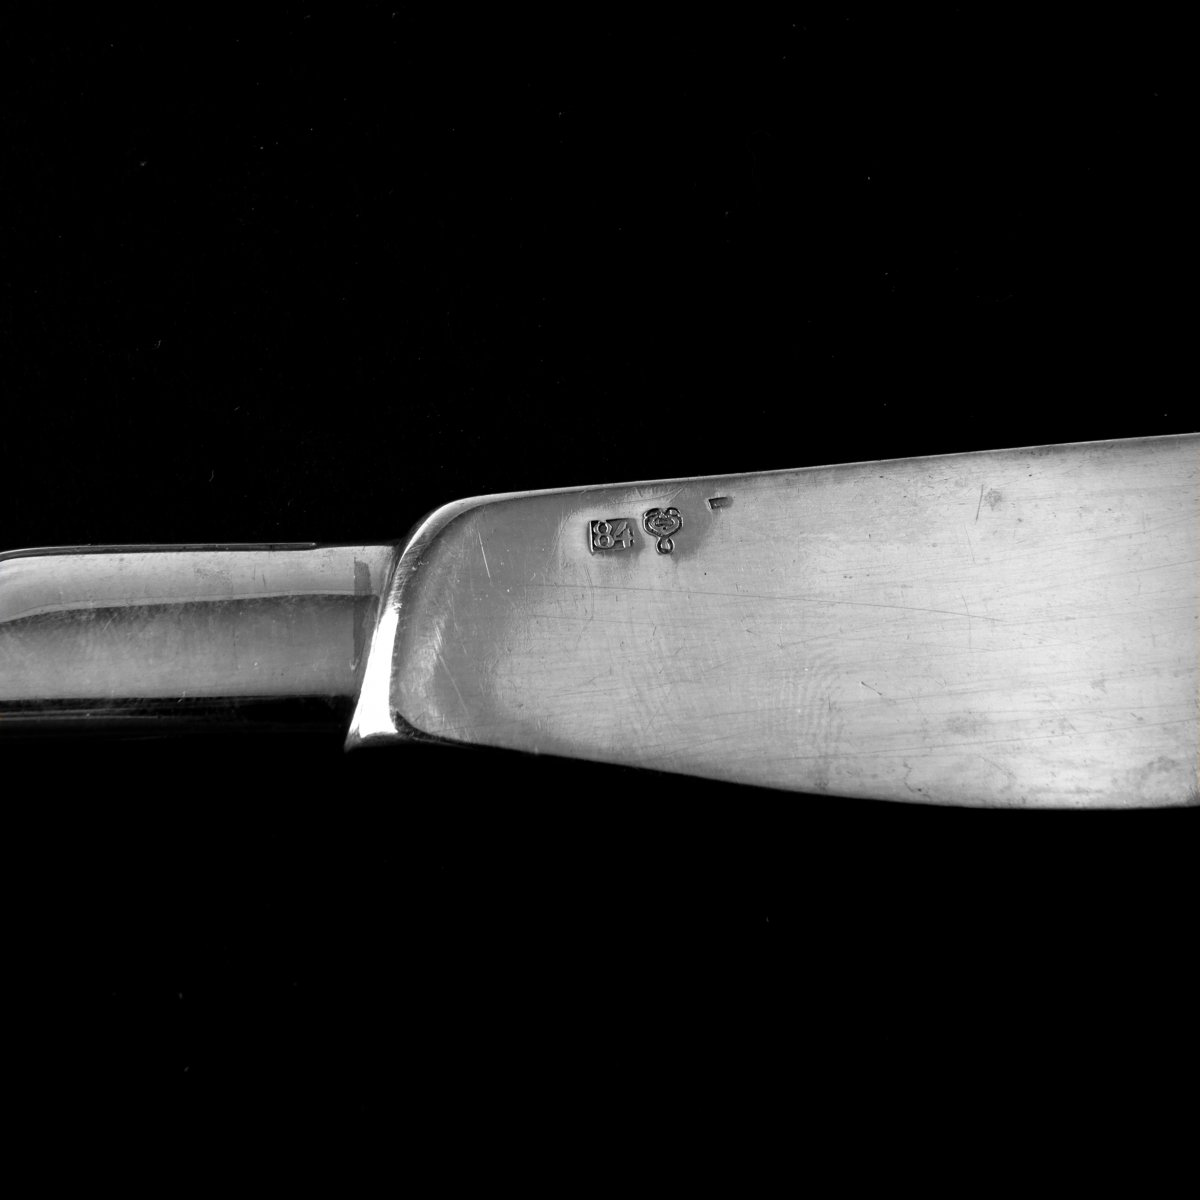 Lot 18 - Henry van de Velde, Fish Knife 'Modell I', 1905/06Fish Knife 'Modell I', 1905/06L. 20.2 cm. Made